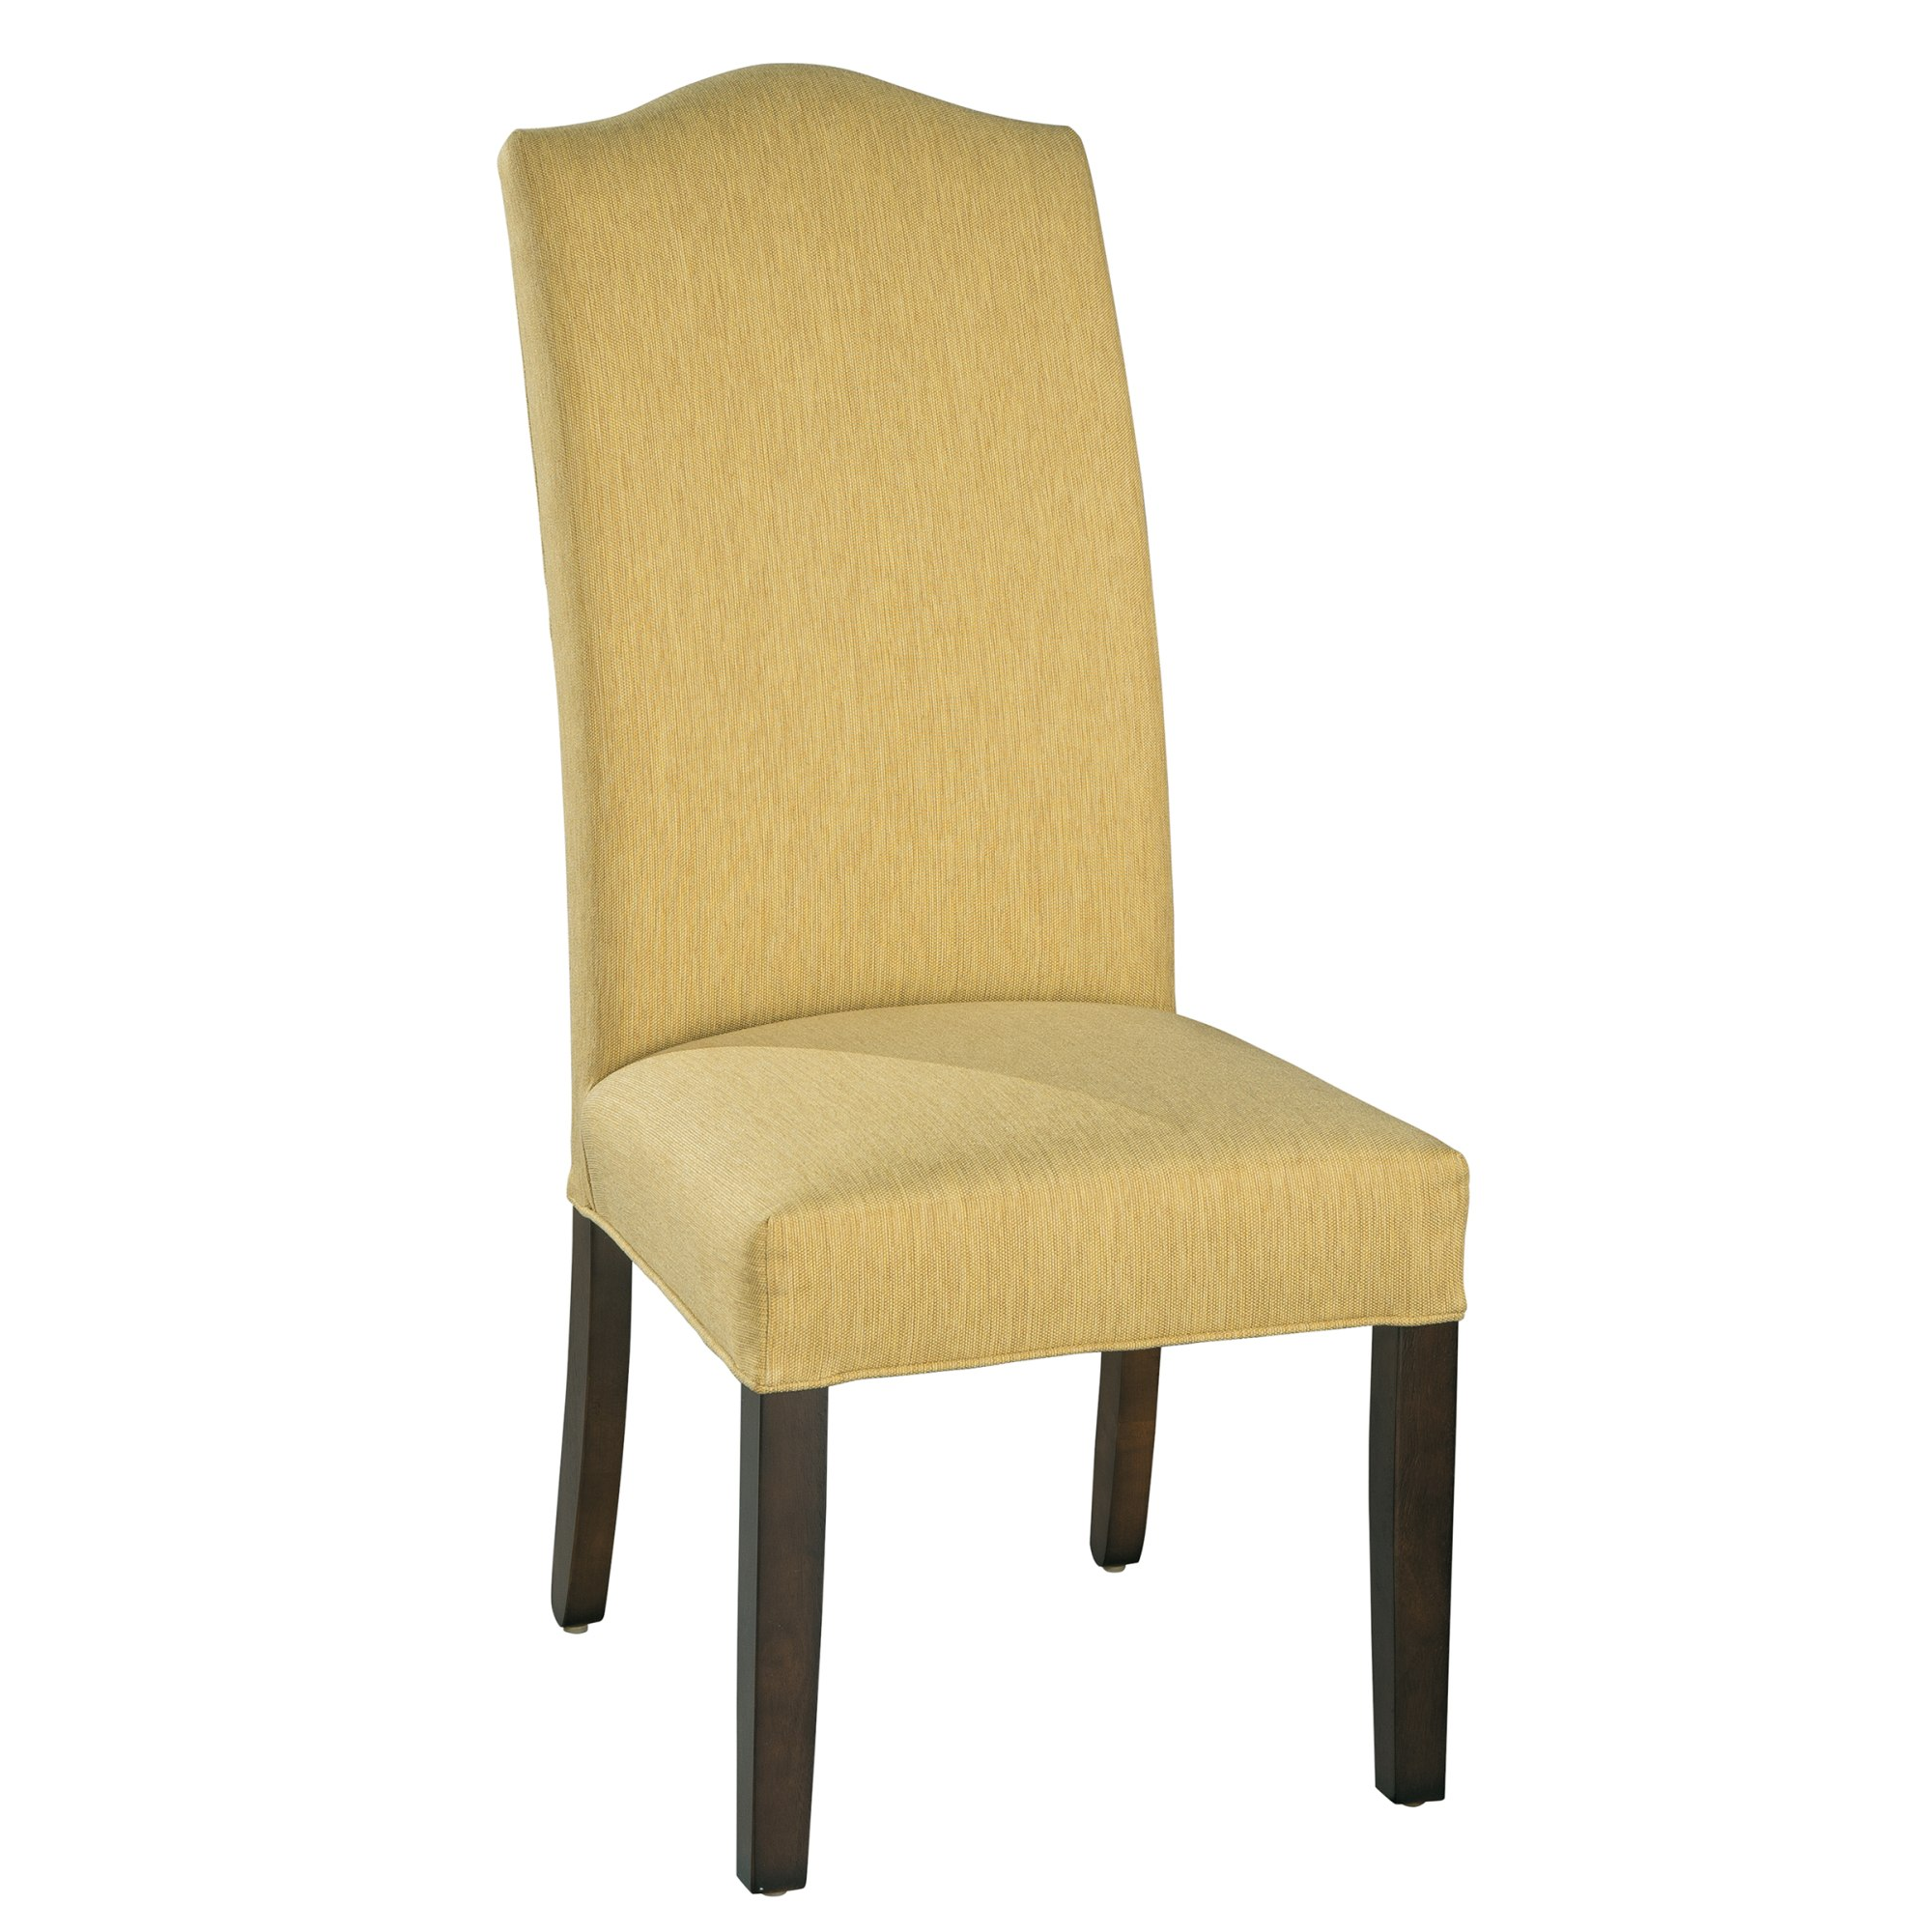 Image for 7245 Candice Hostess Chair from Hekman Official Website